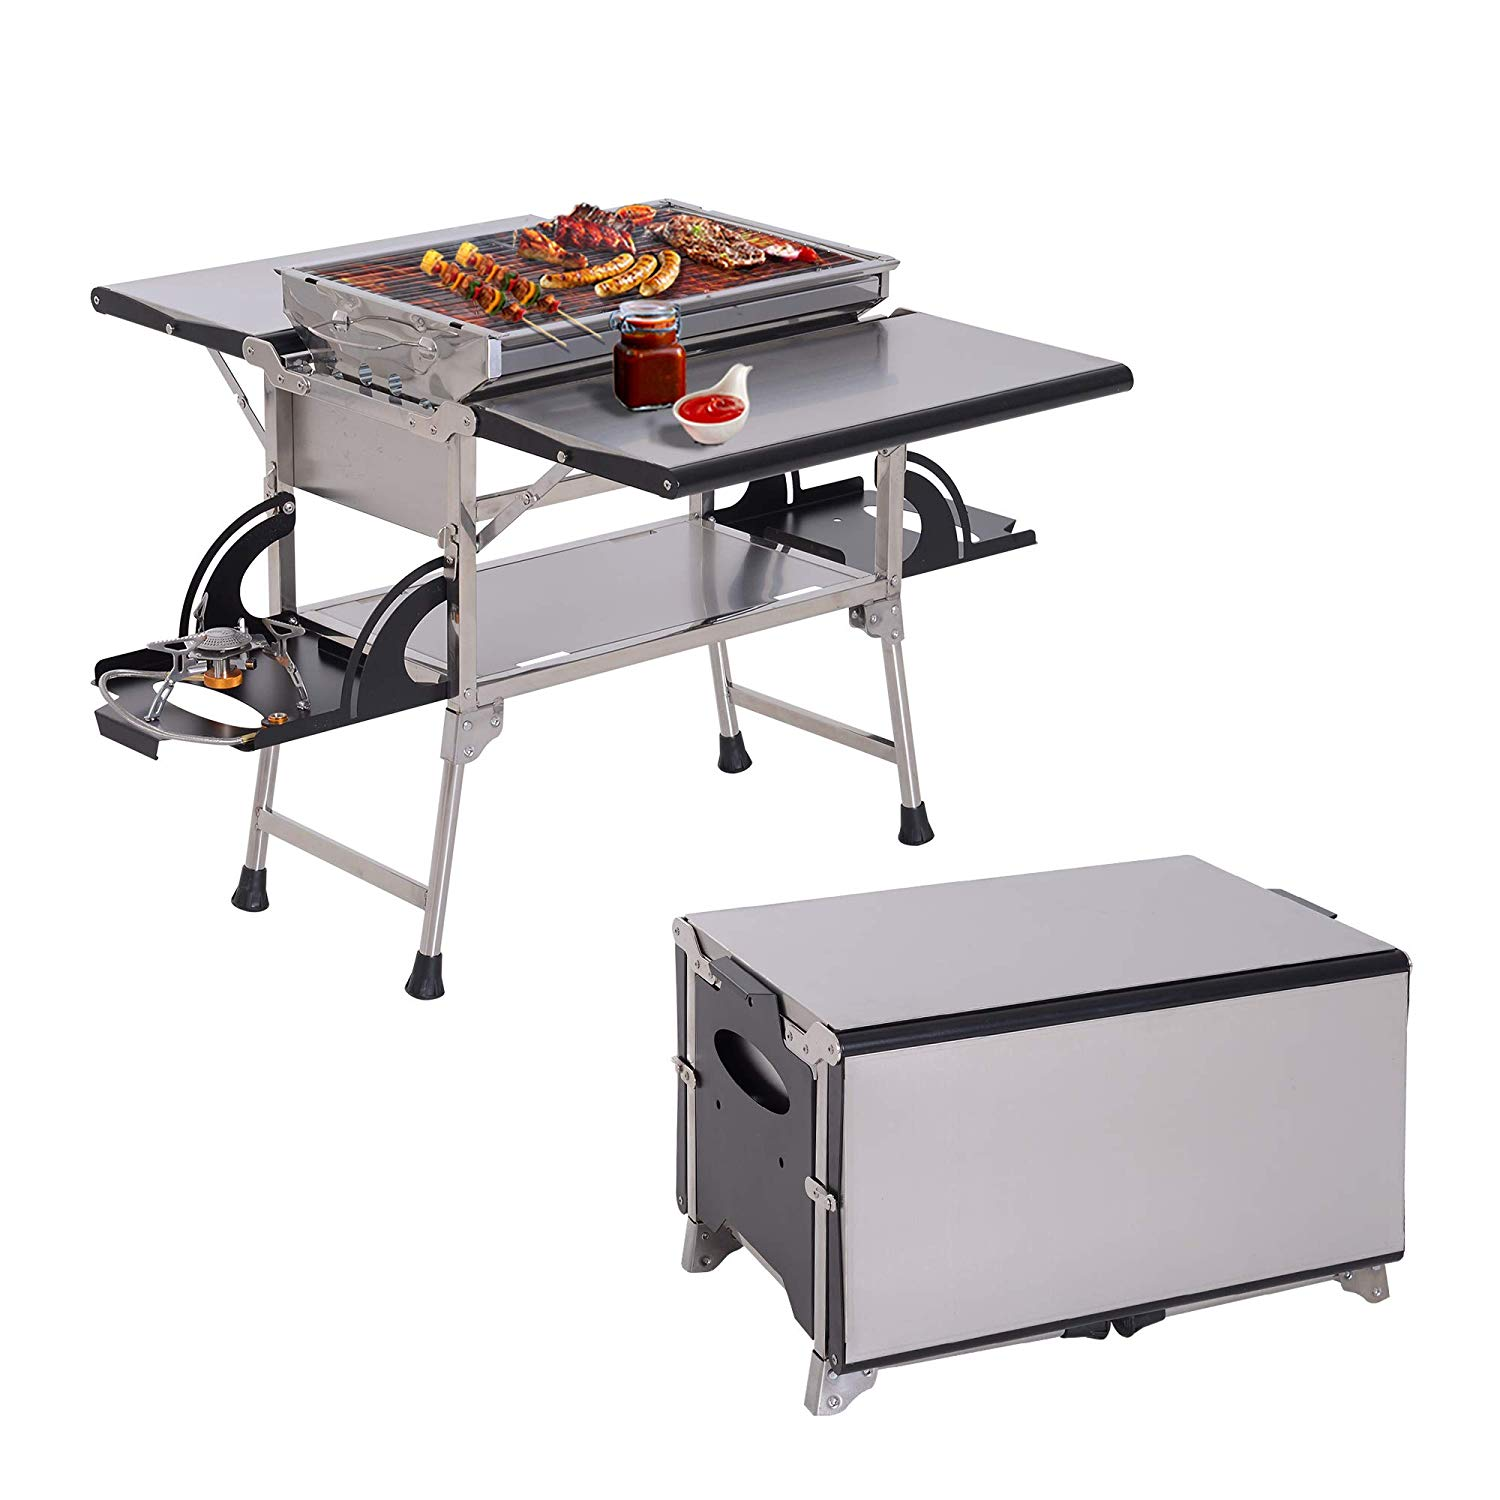 Outsunny 2 in 1 Multi-use Gas Charcoal BBQ Grill Folding Picnic Table Burner Camping Outdoor Garden Kitchen